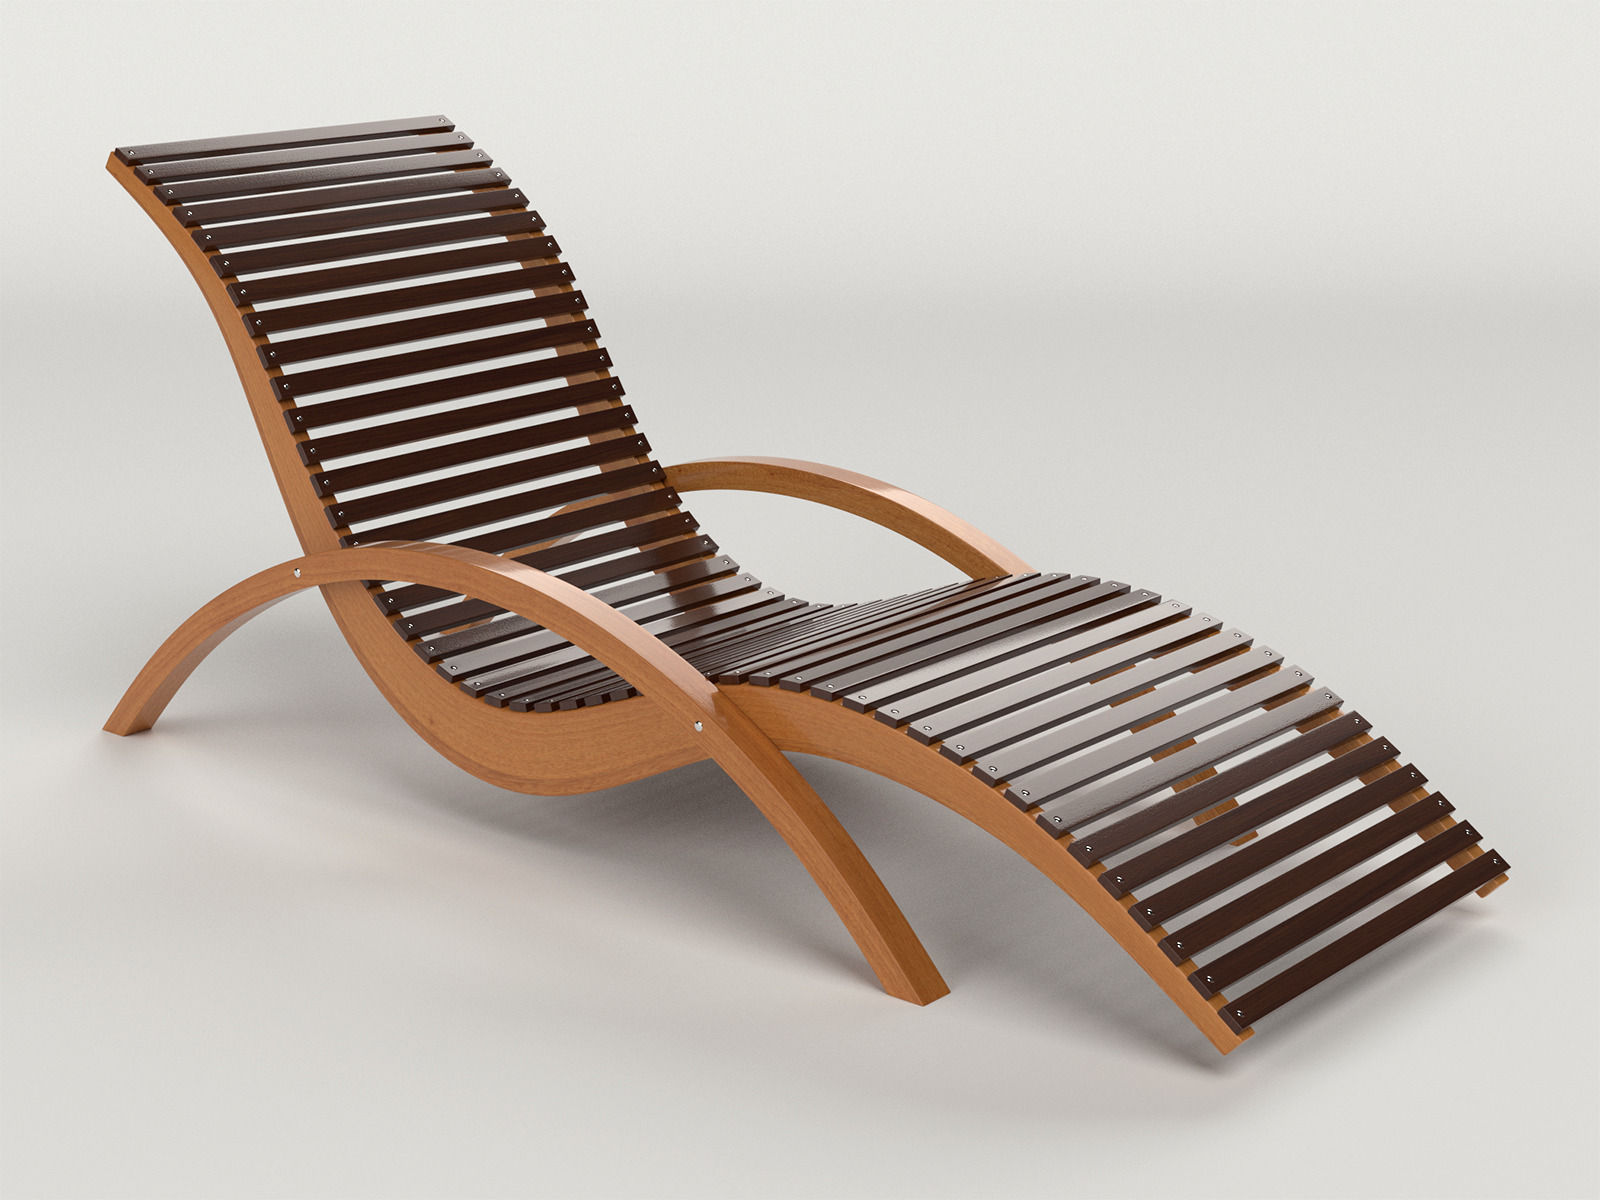 Outdoor wooden lounge chairs - Lounge Chair Outdoor Wood Patio Deck 3d Model Obj Dxf Mtl 1